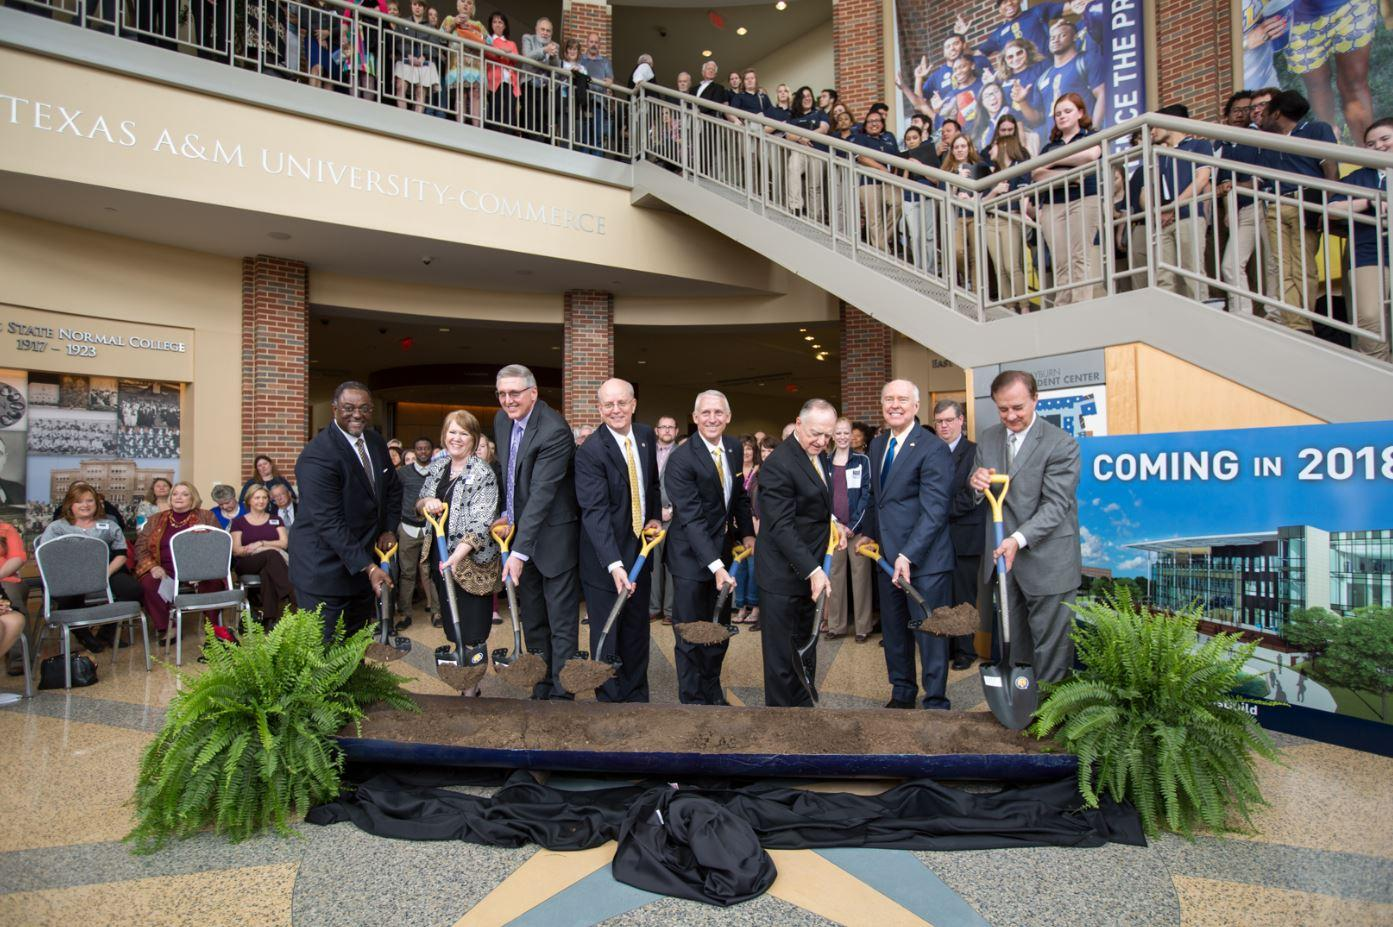 Administrators+symbolically+break+ground+for+the+Nursing+Building+including+Chancellor+Sharp+%28far+right%29%2C+President+Keck+%28second+from+the+right%29%2C+and+State+Rep.+Dan+Flynn+%28third+from+the+right%29.